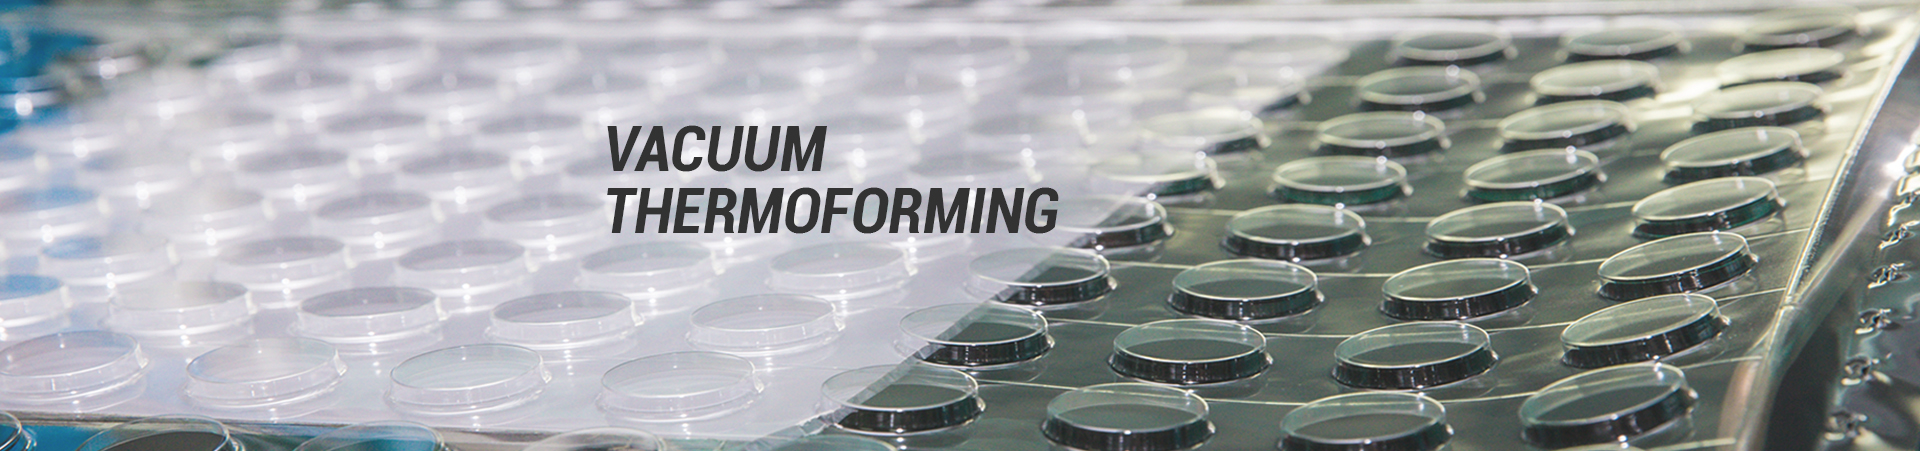 Vacuum-Thermoforming-Banner-1920x451